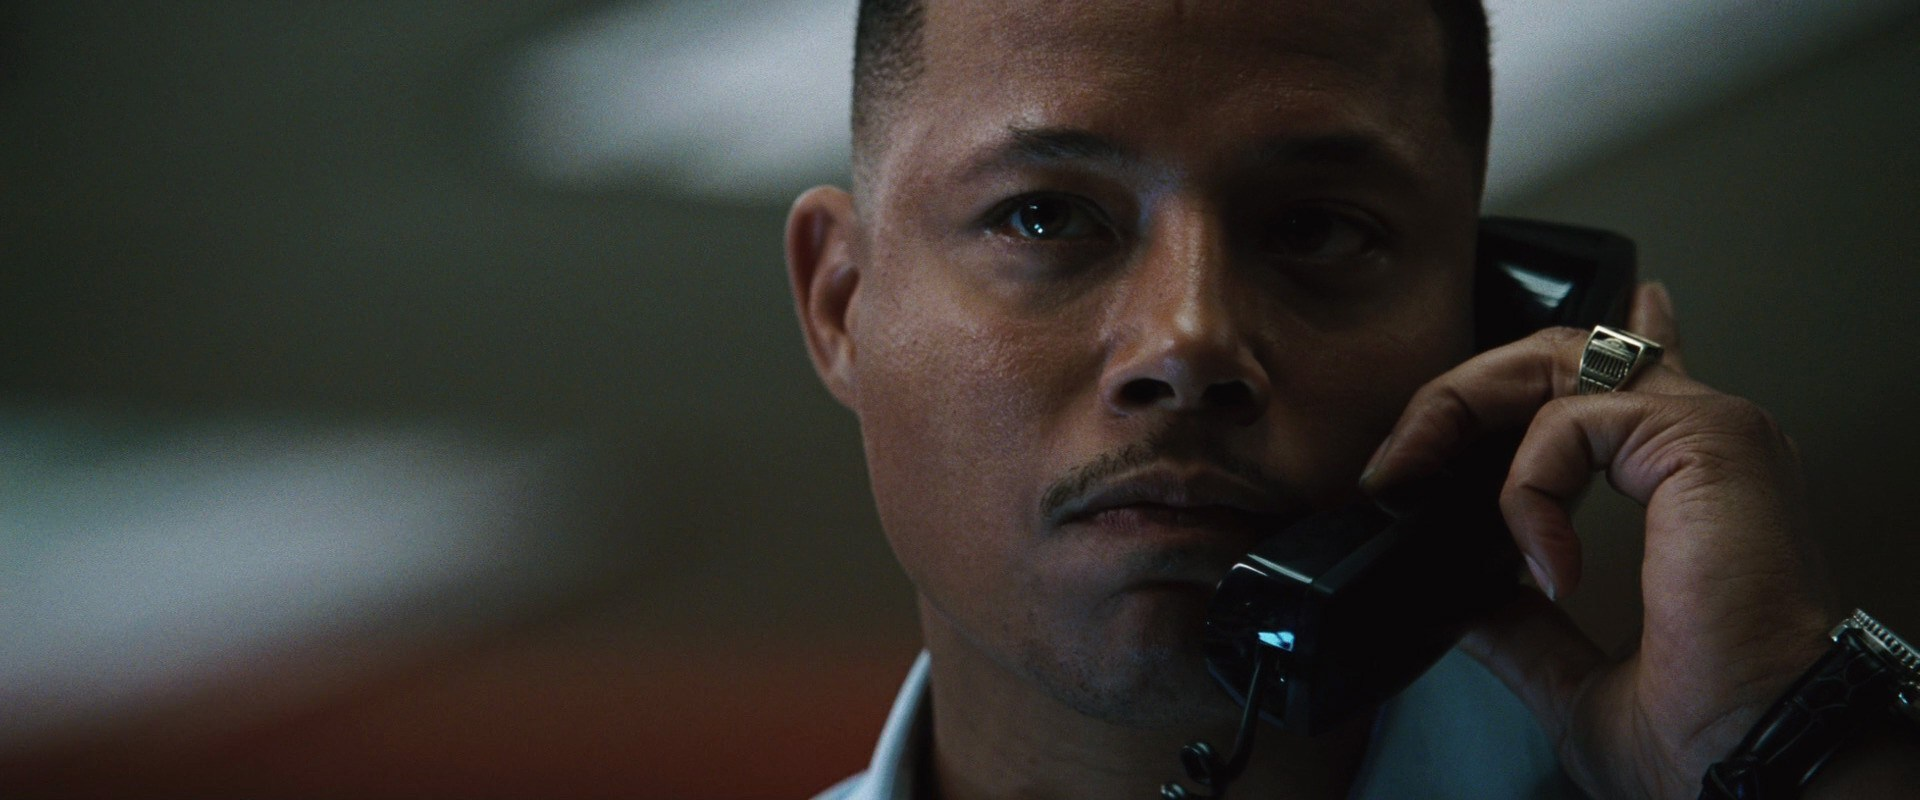 File:Terrence-howard-ironman.jpg